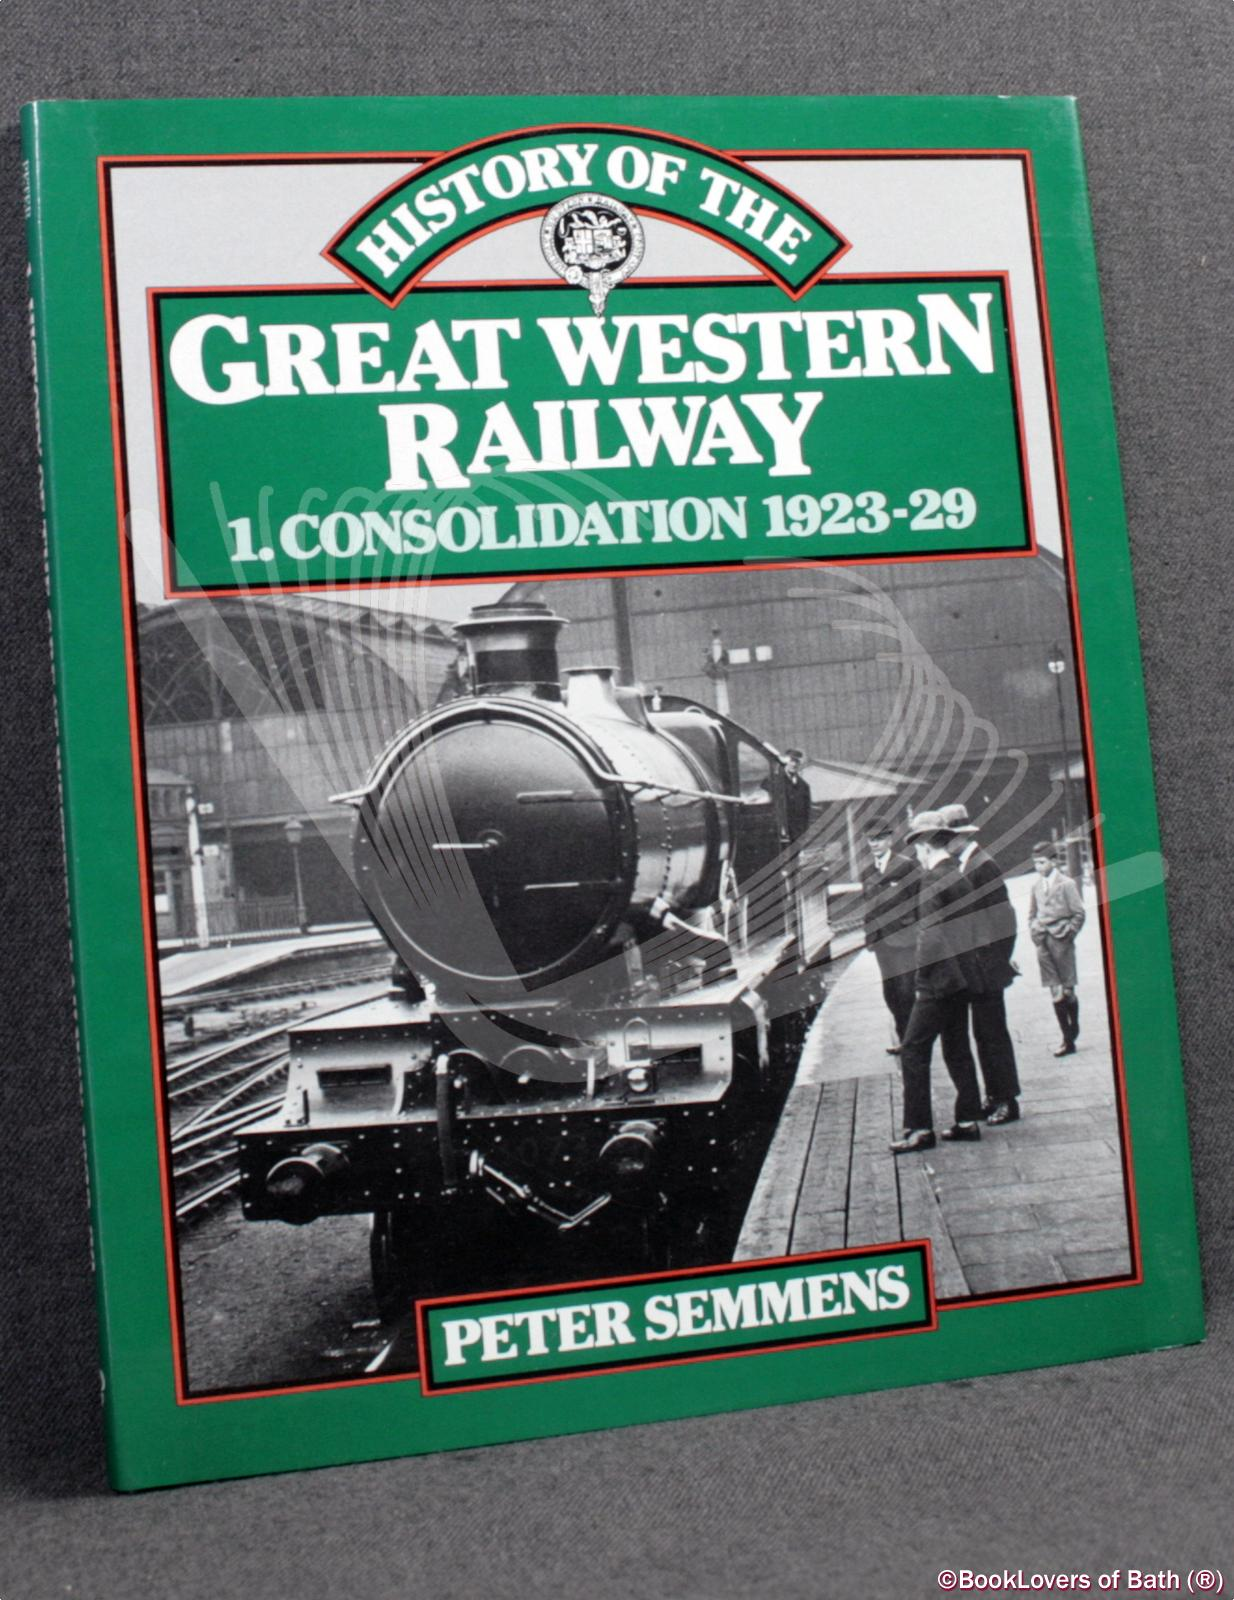 History of the Great Western Railway [3 Volumes] - Peter Semmens